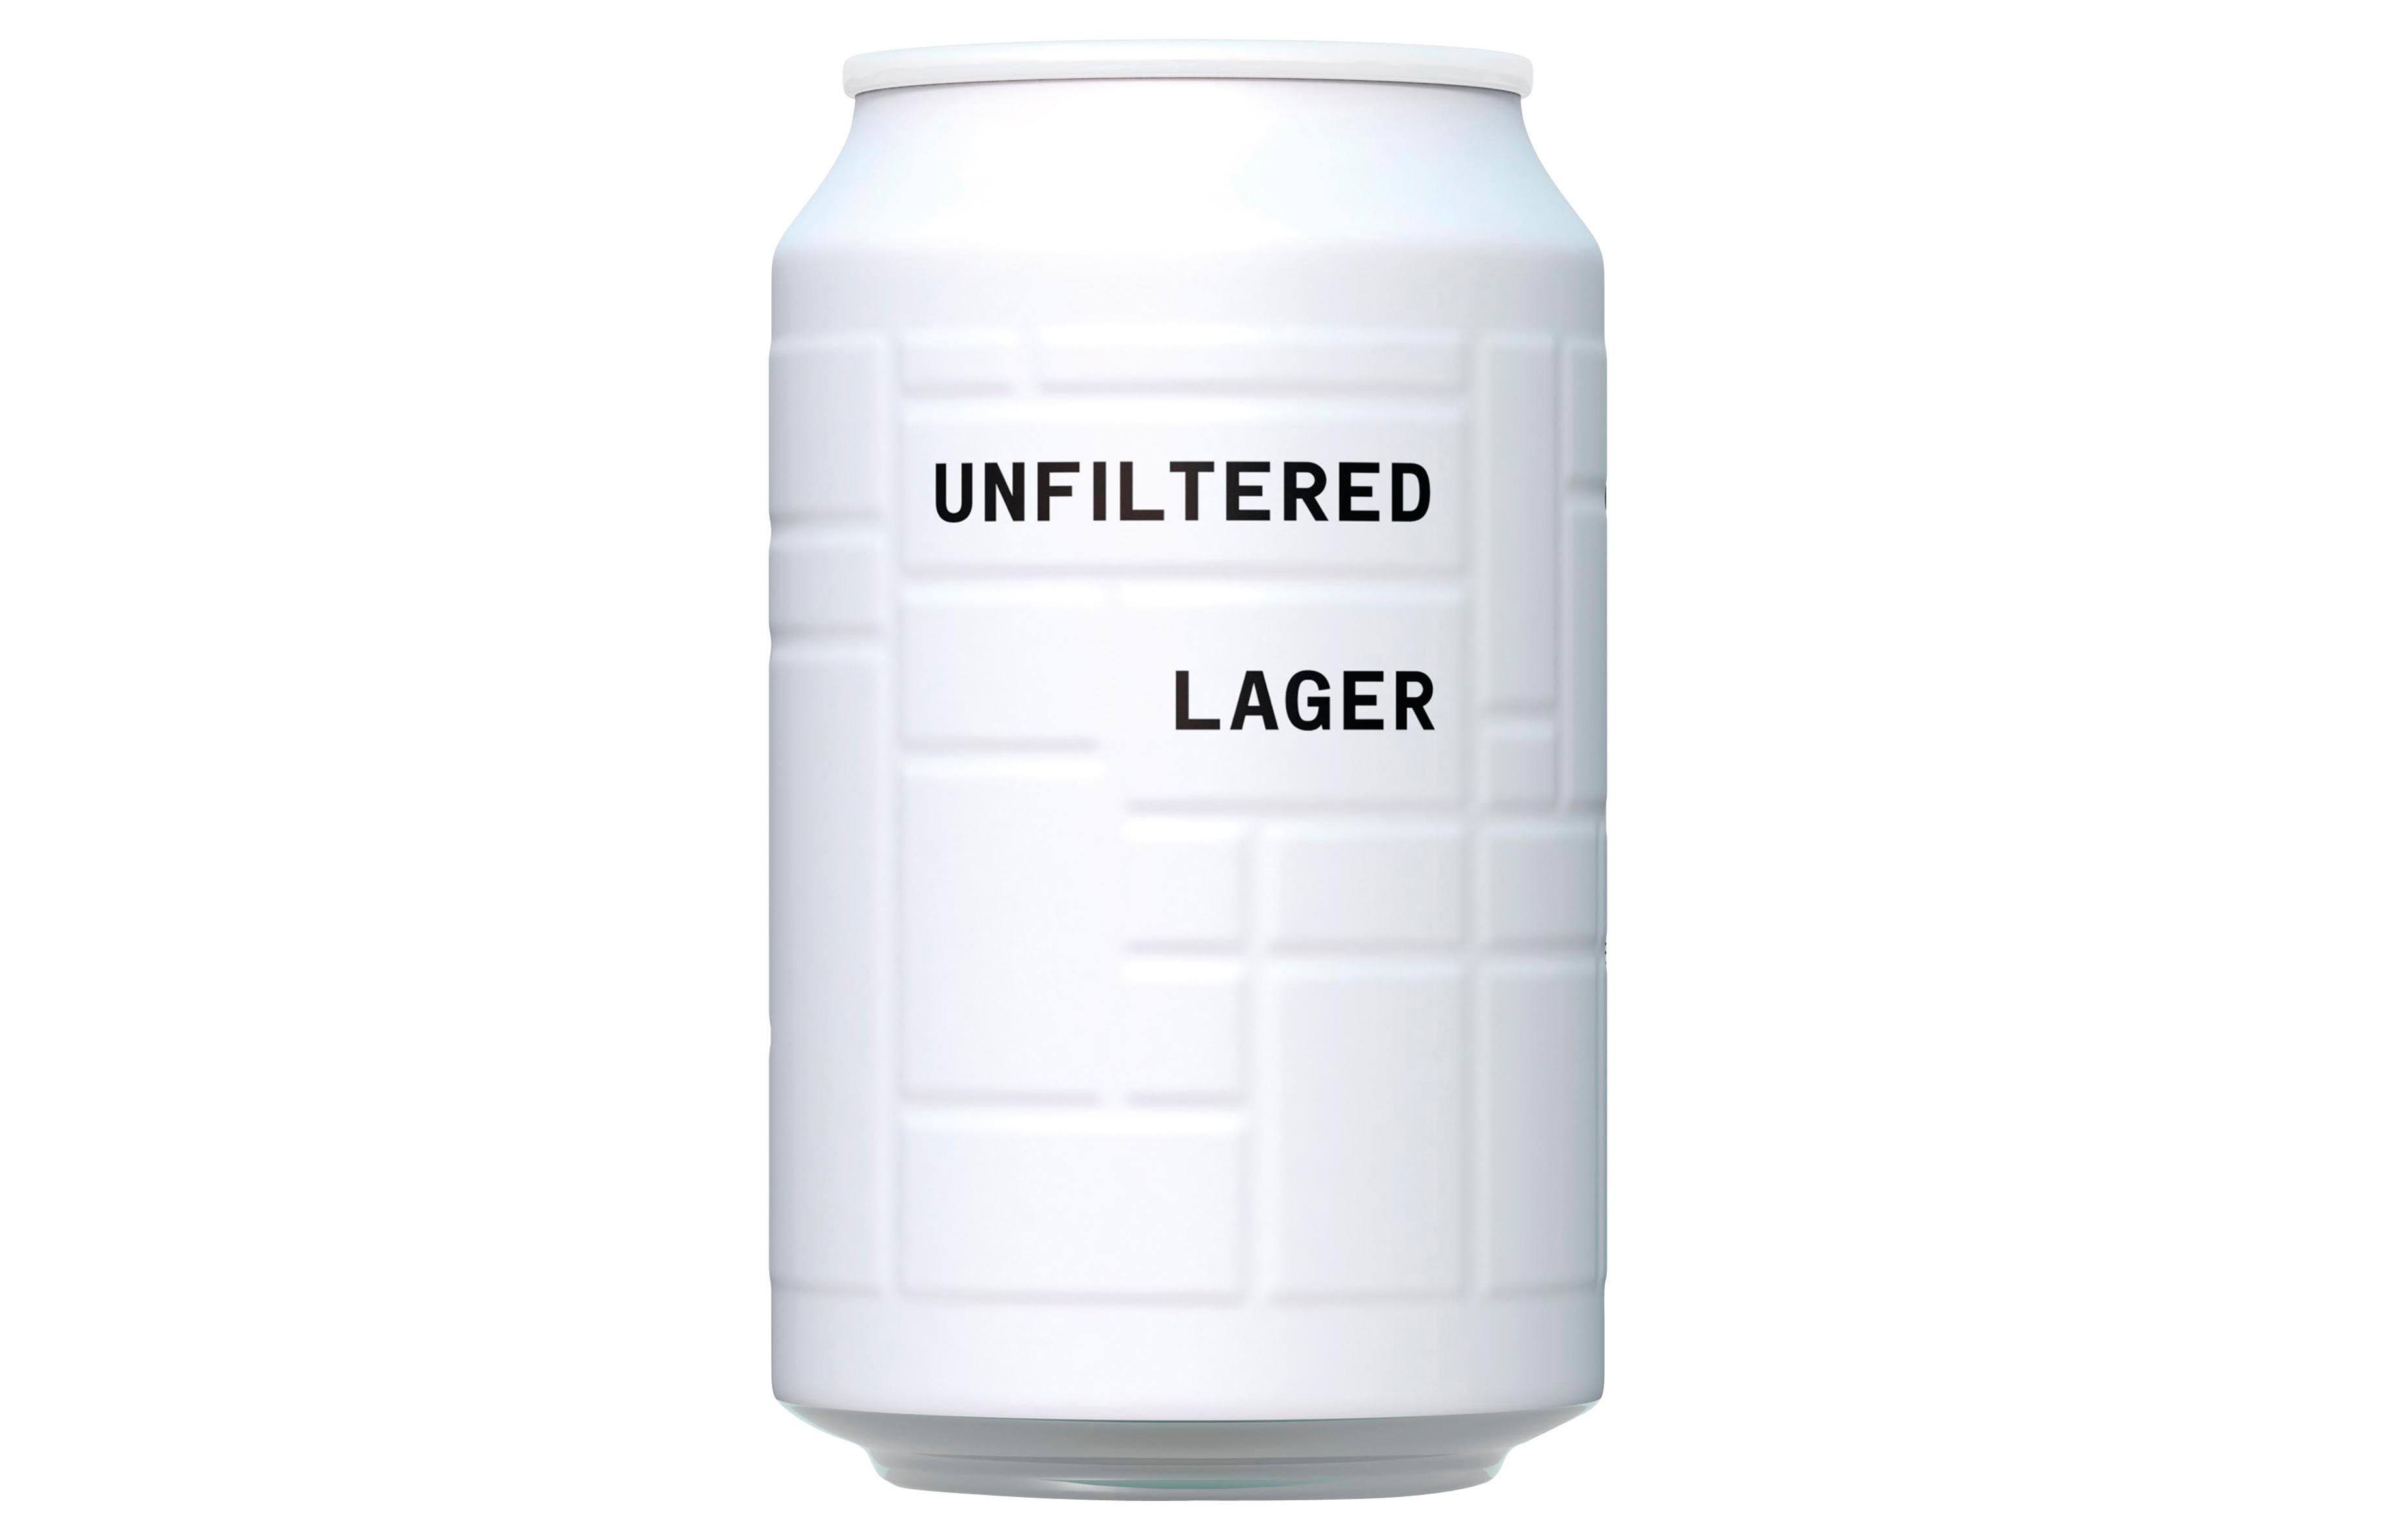 A can of And Union's Unfiltered Lager